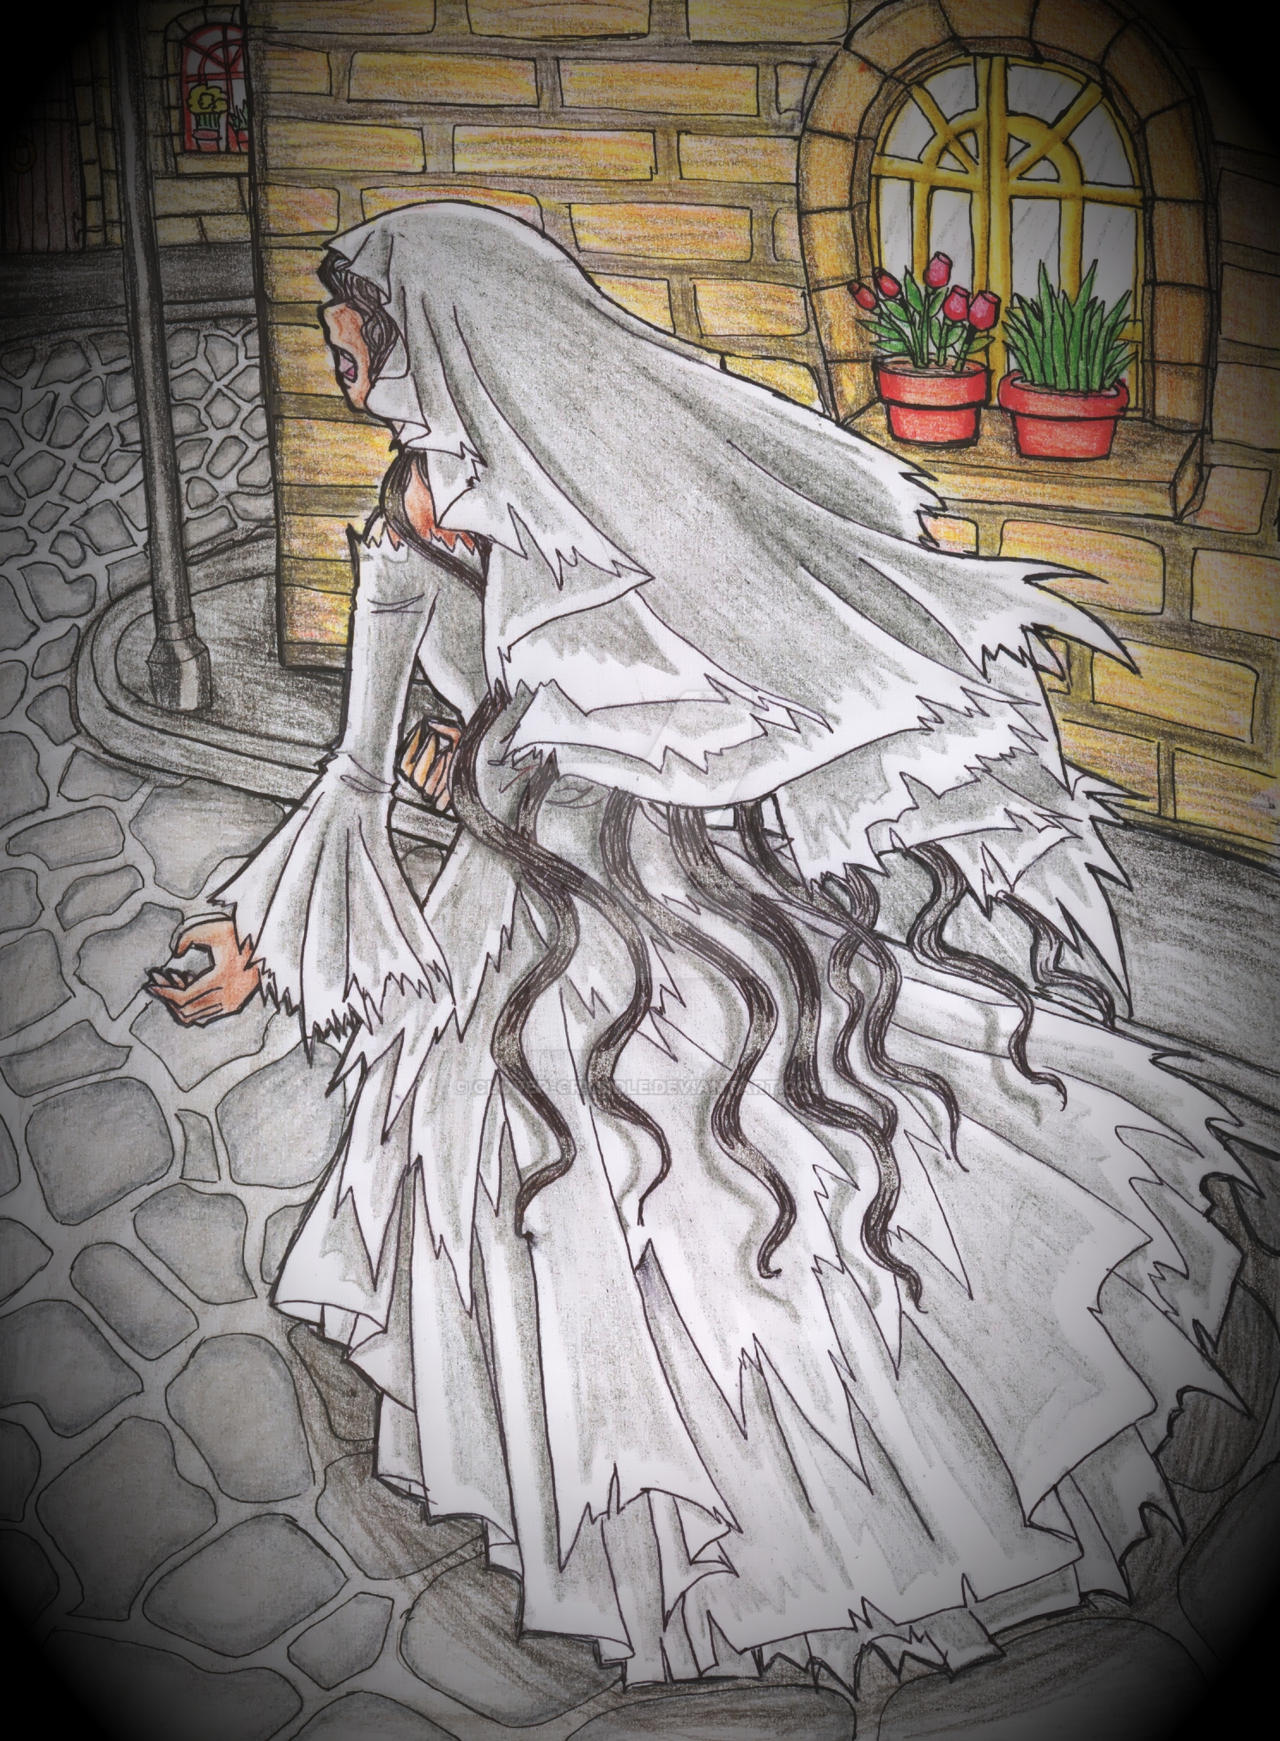 la llorona essay La llorona legends can be found throughout parts of latin america and the southwest united states.